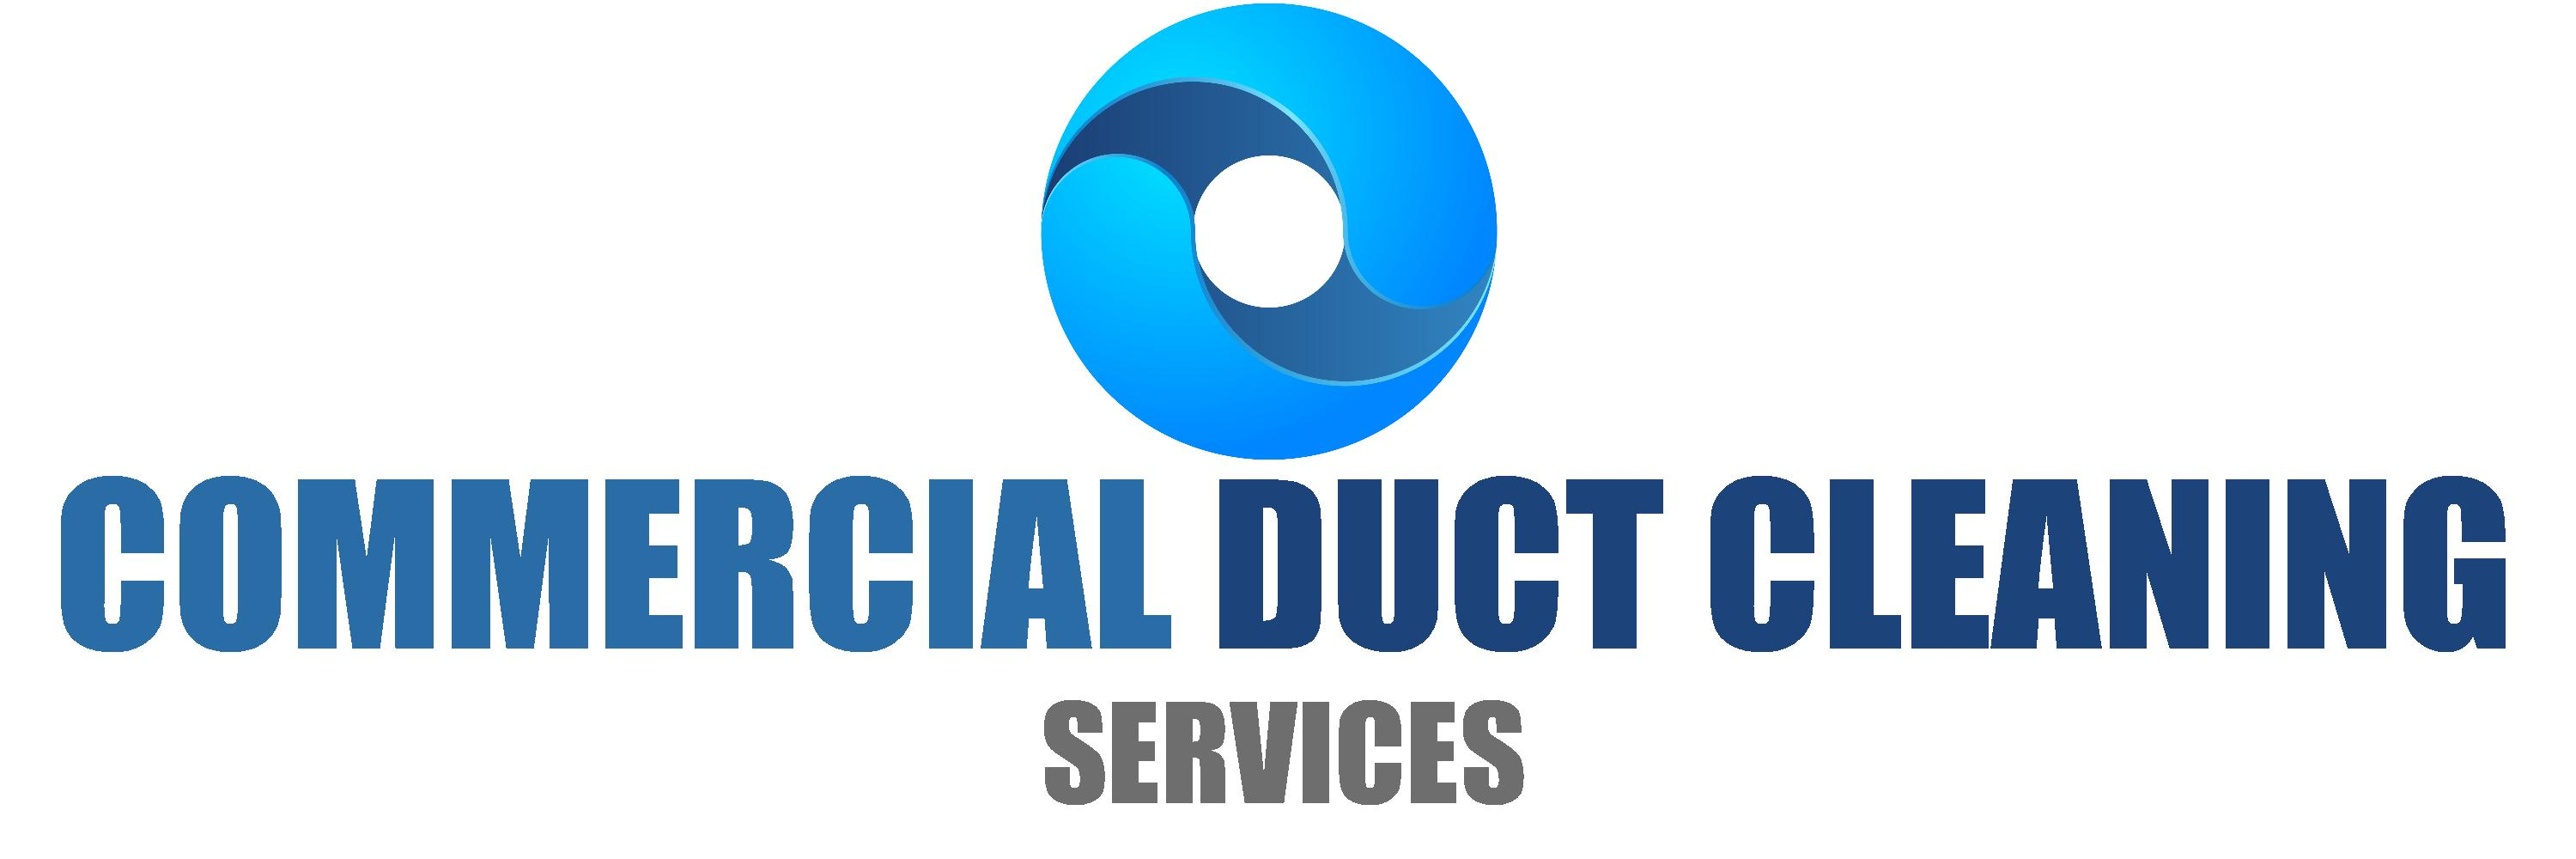 Commercial Duct Services